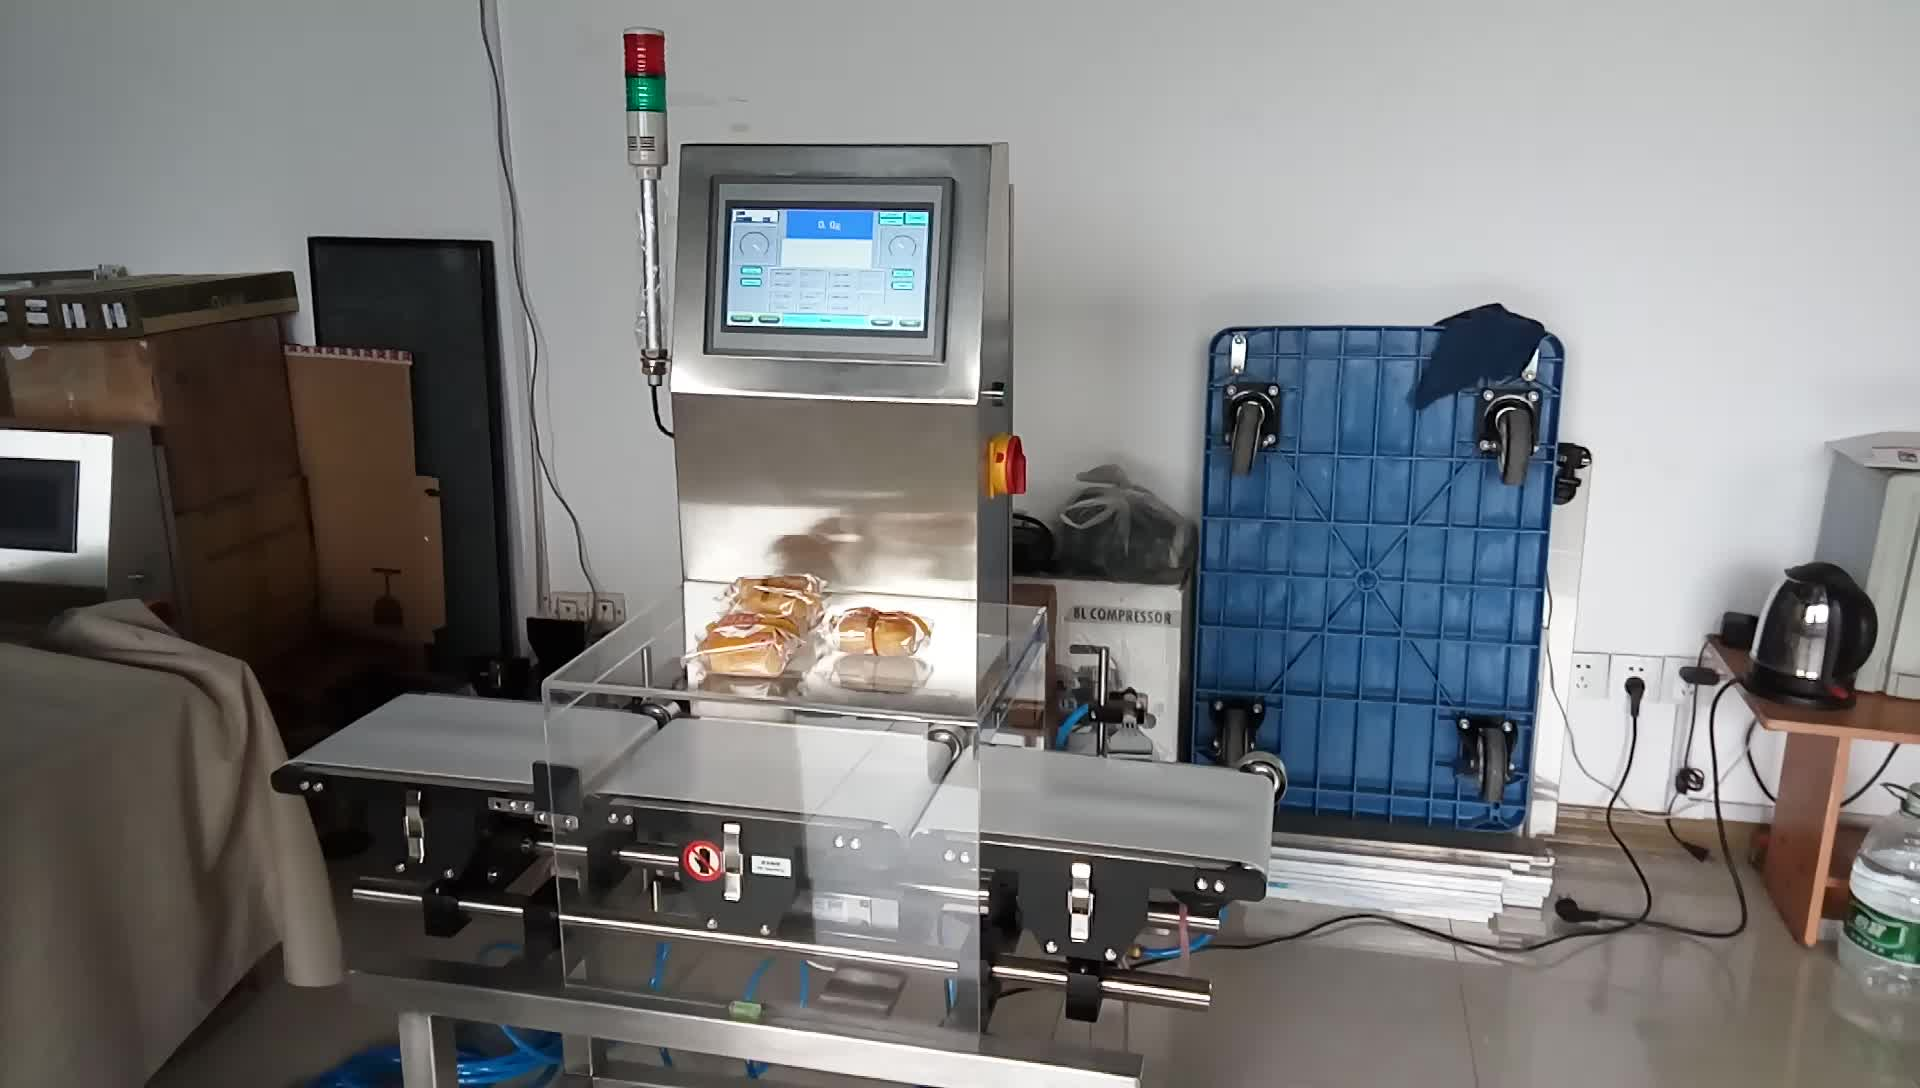 Digital check weigher checkweigher with air reject system for food industry